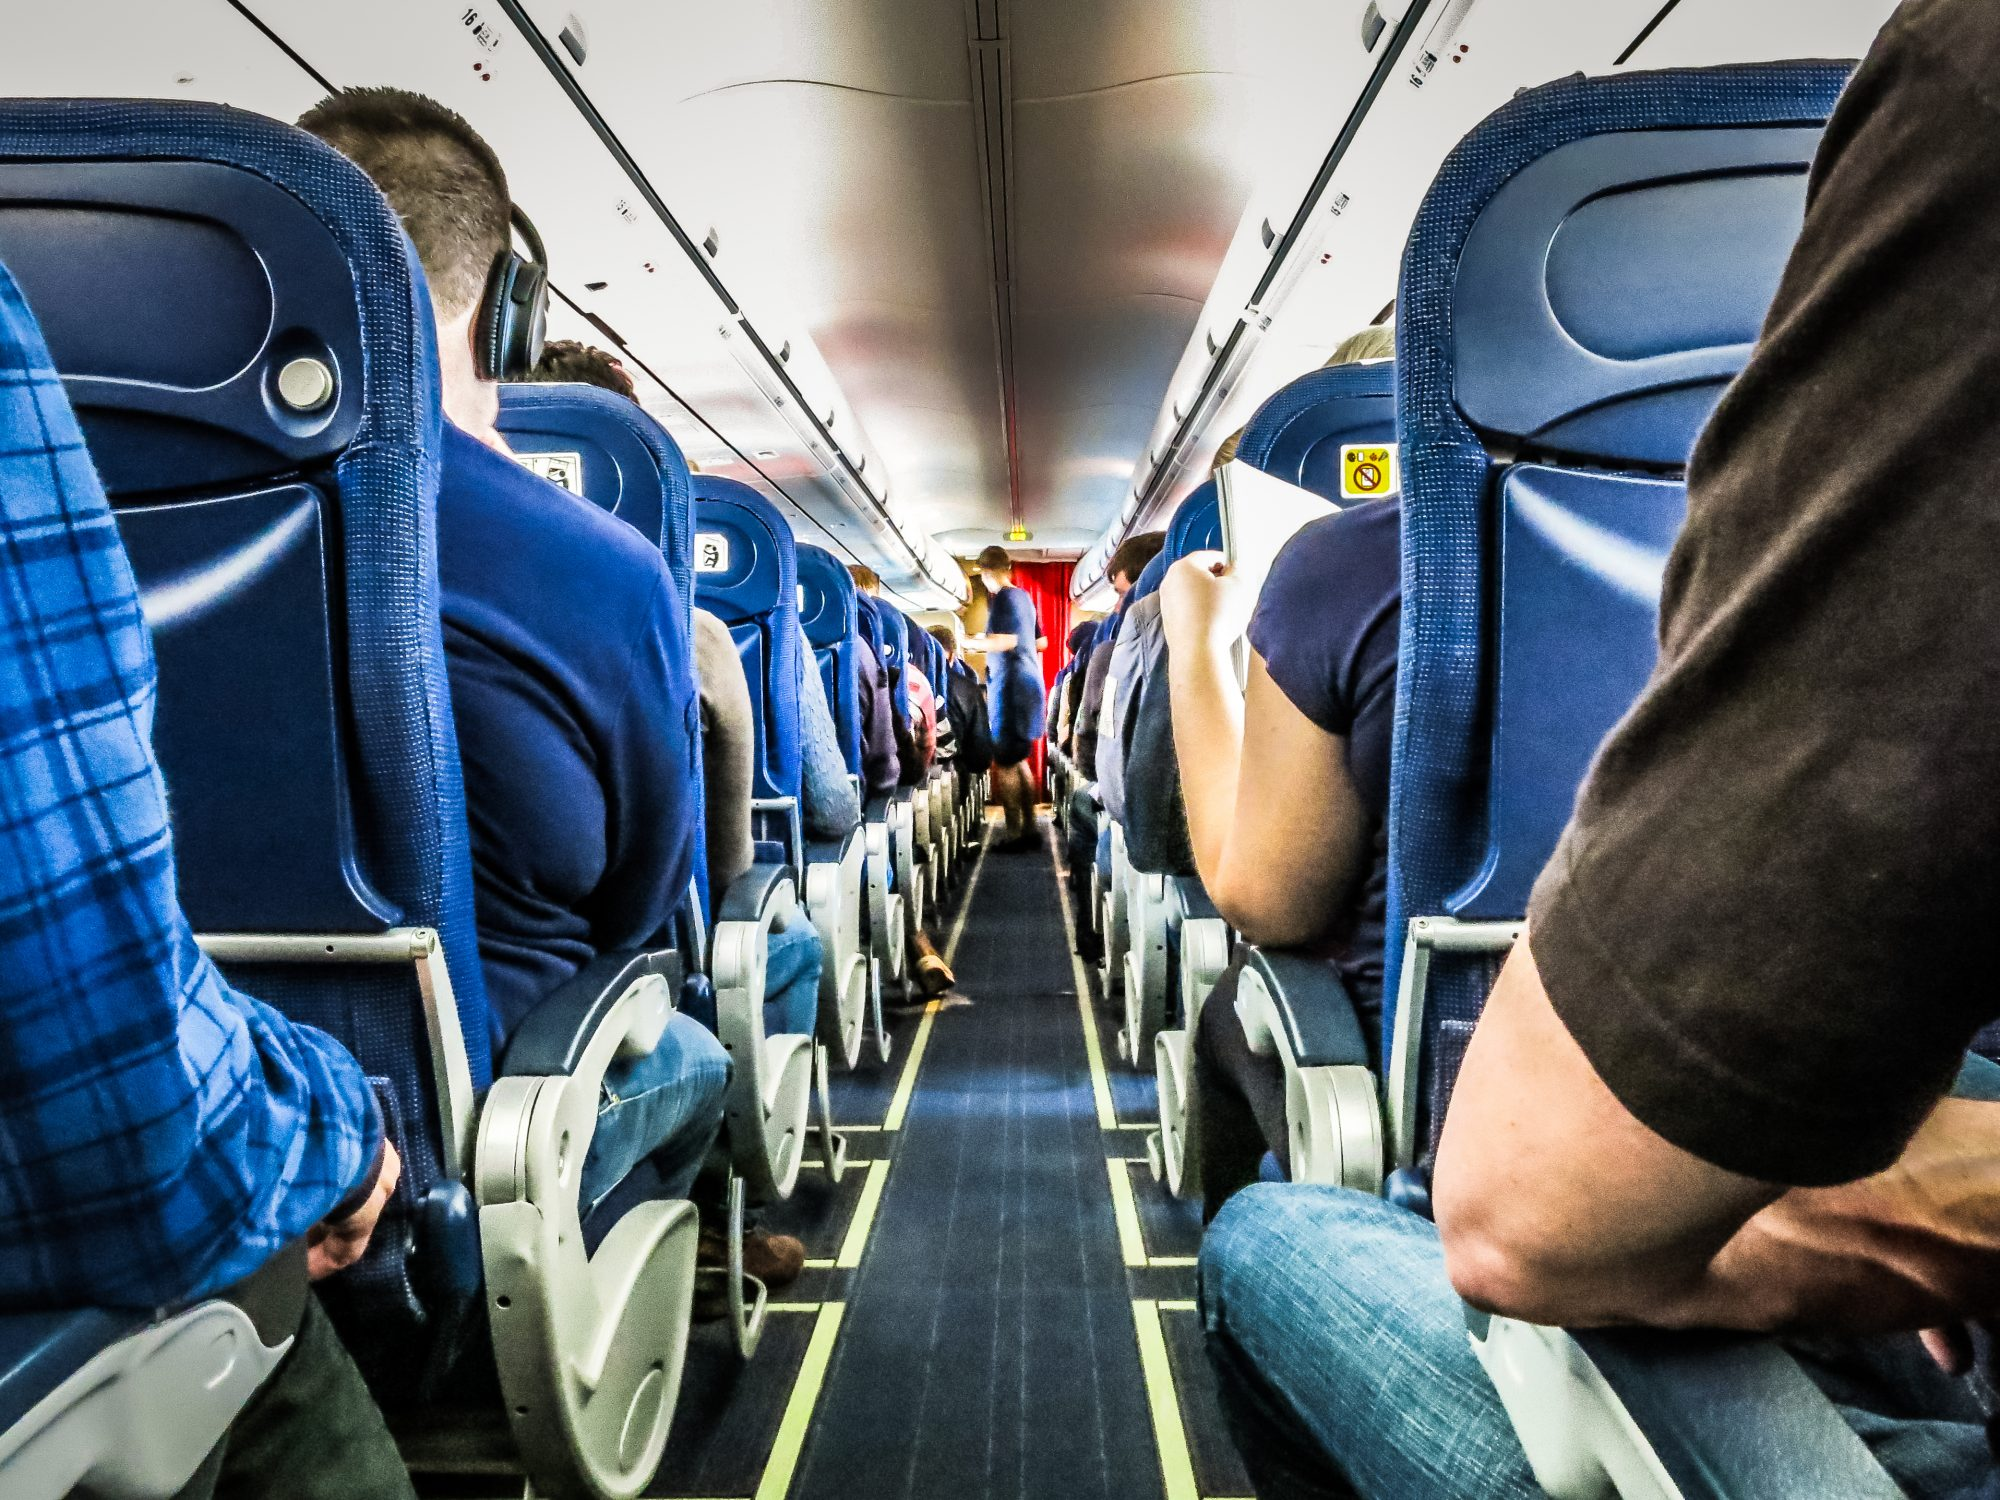 Don't Make These Travel Etiquette Mistakes the Next Time You Fly